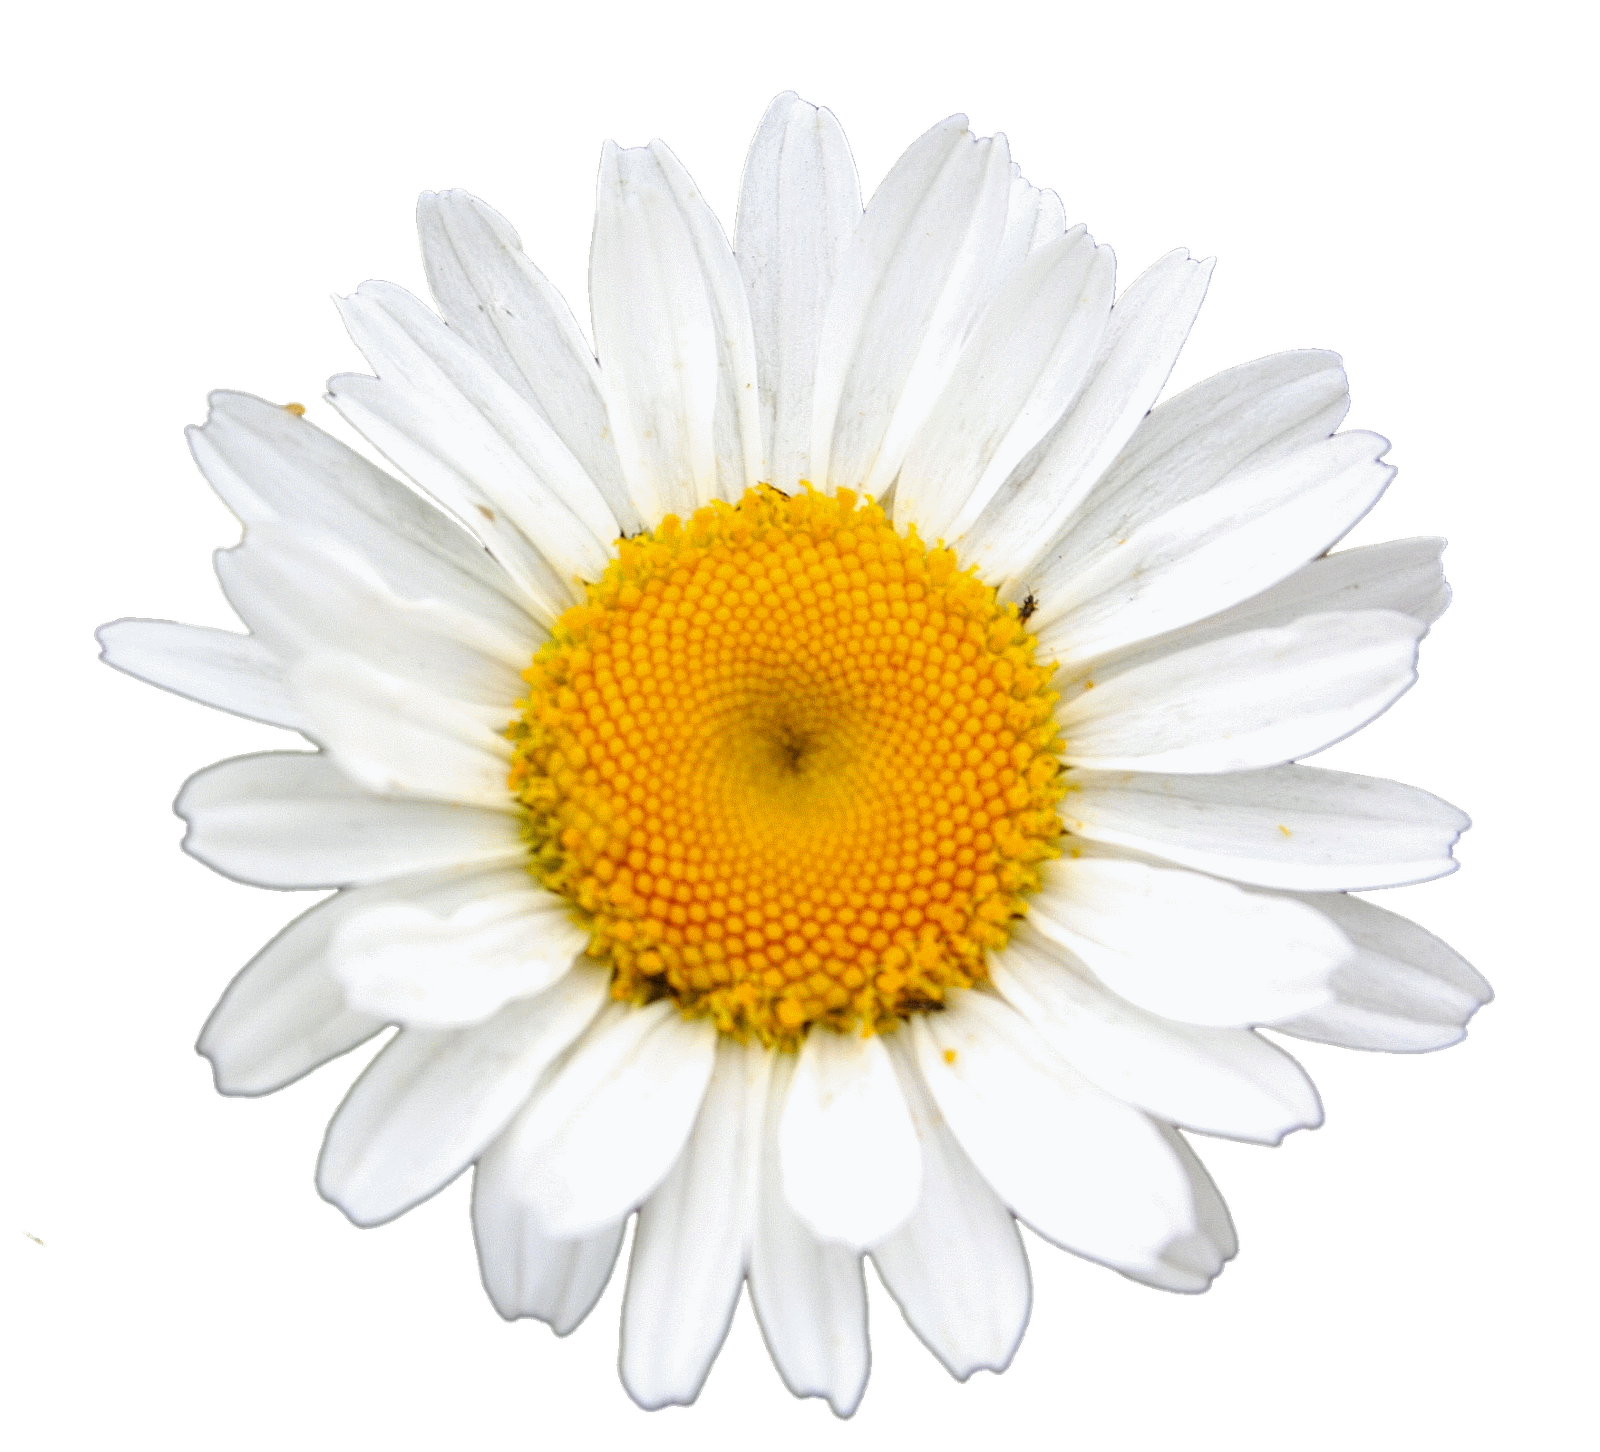 Daisy clipart landscape. Pin by peachy on